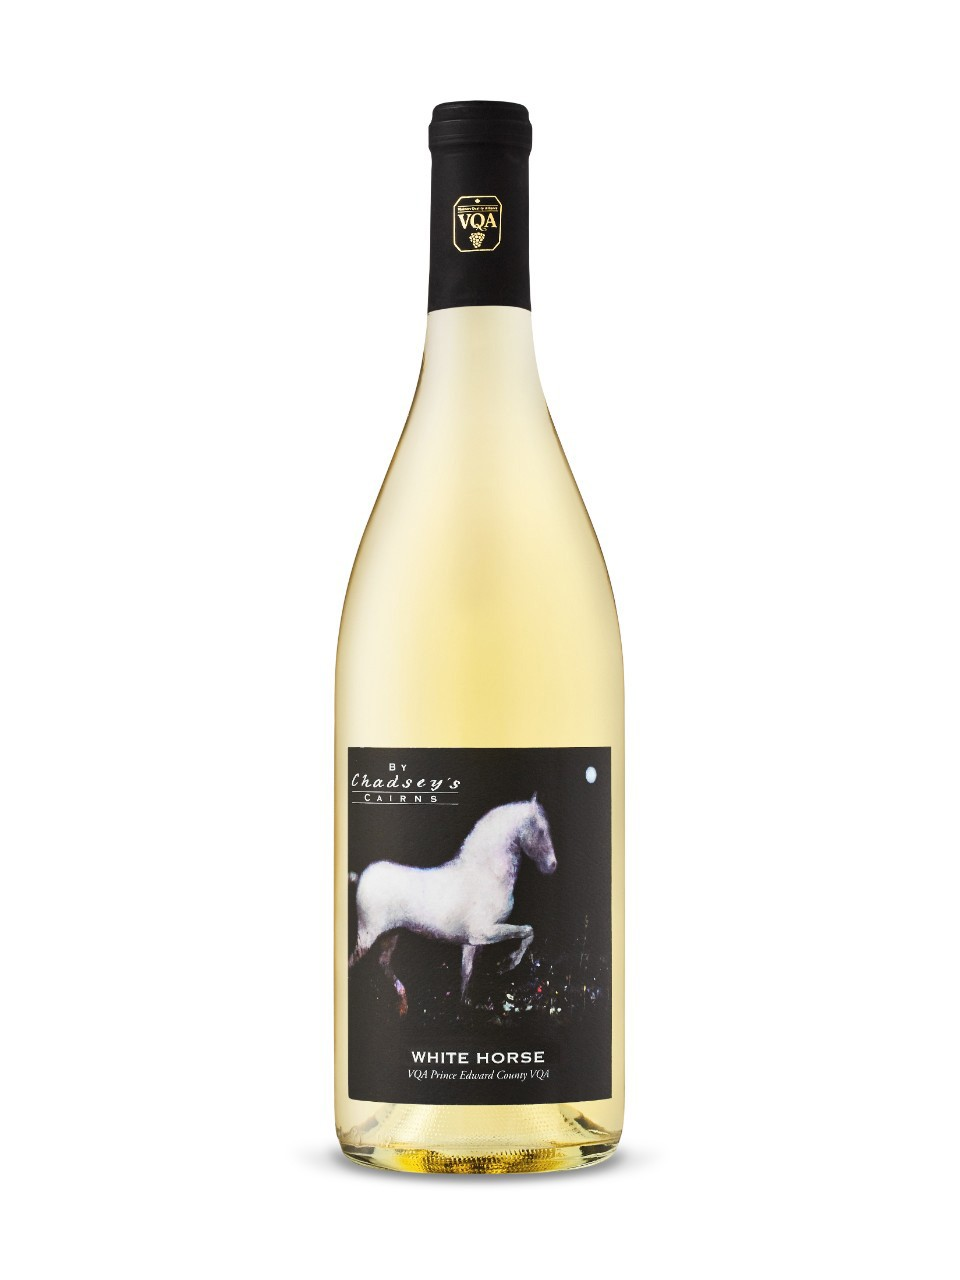 By Chadsey's Cairns White Horse VQA